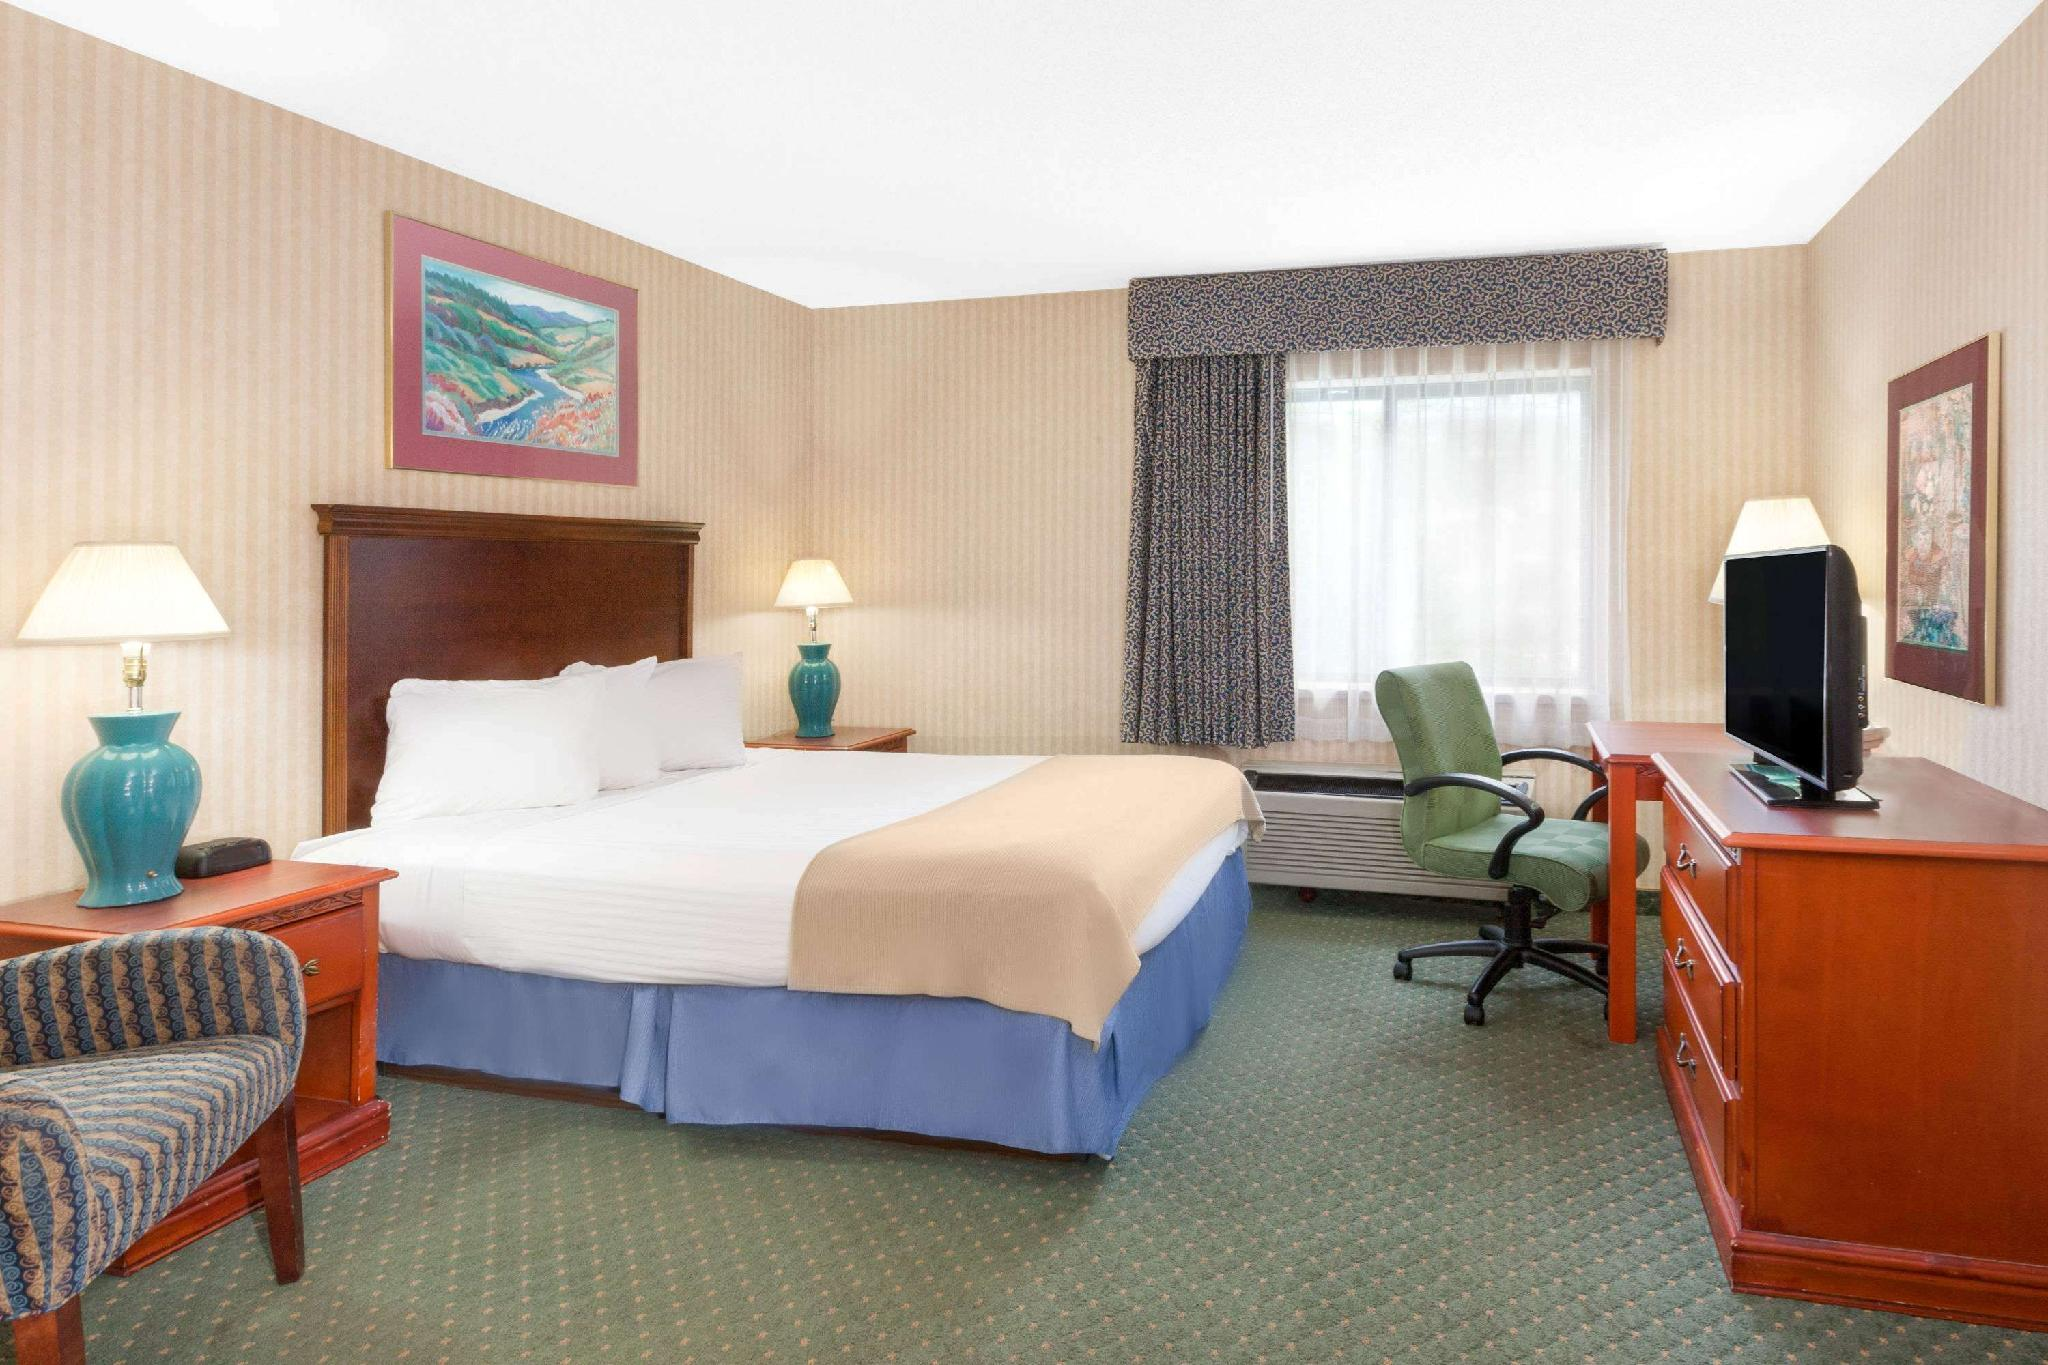 Baymont by Wyndham Bridgeport/Frankenmuth, Saginaw